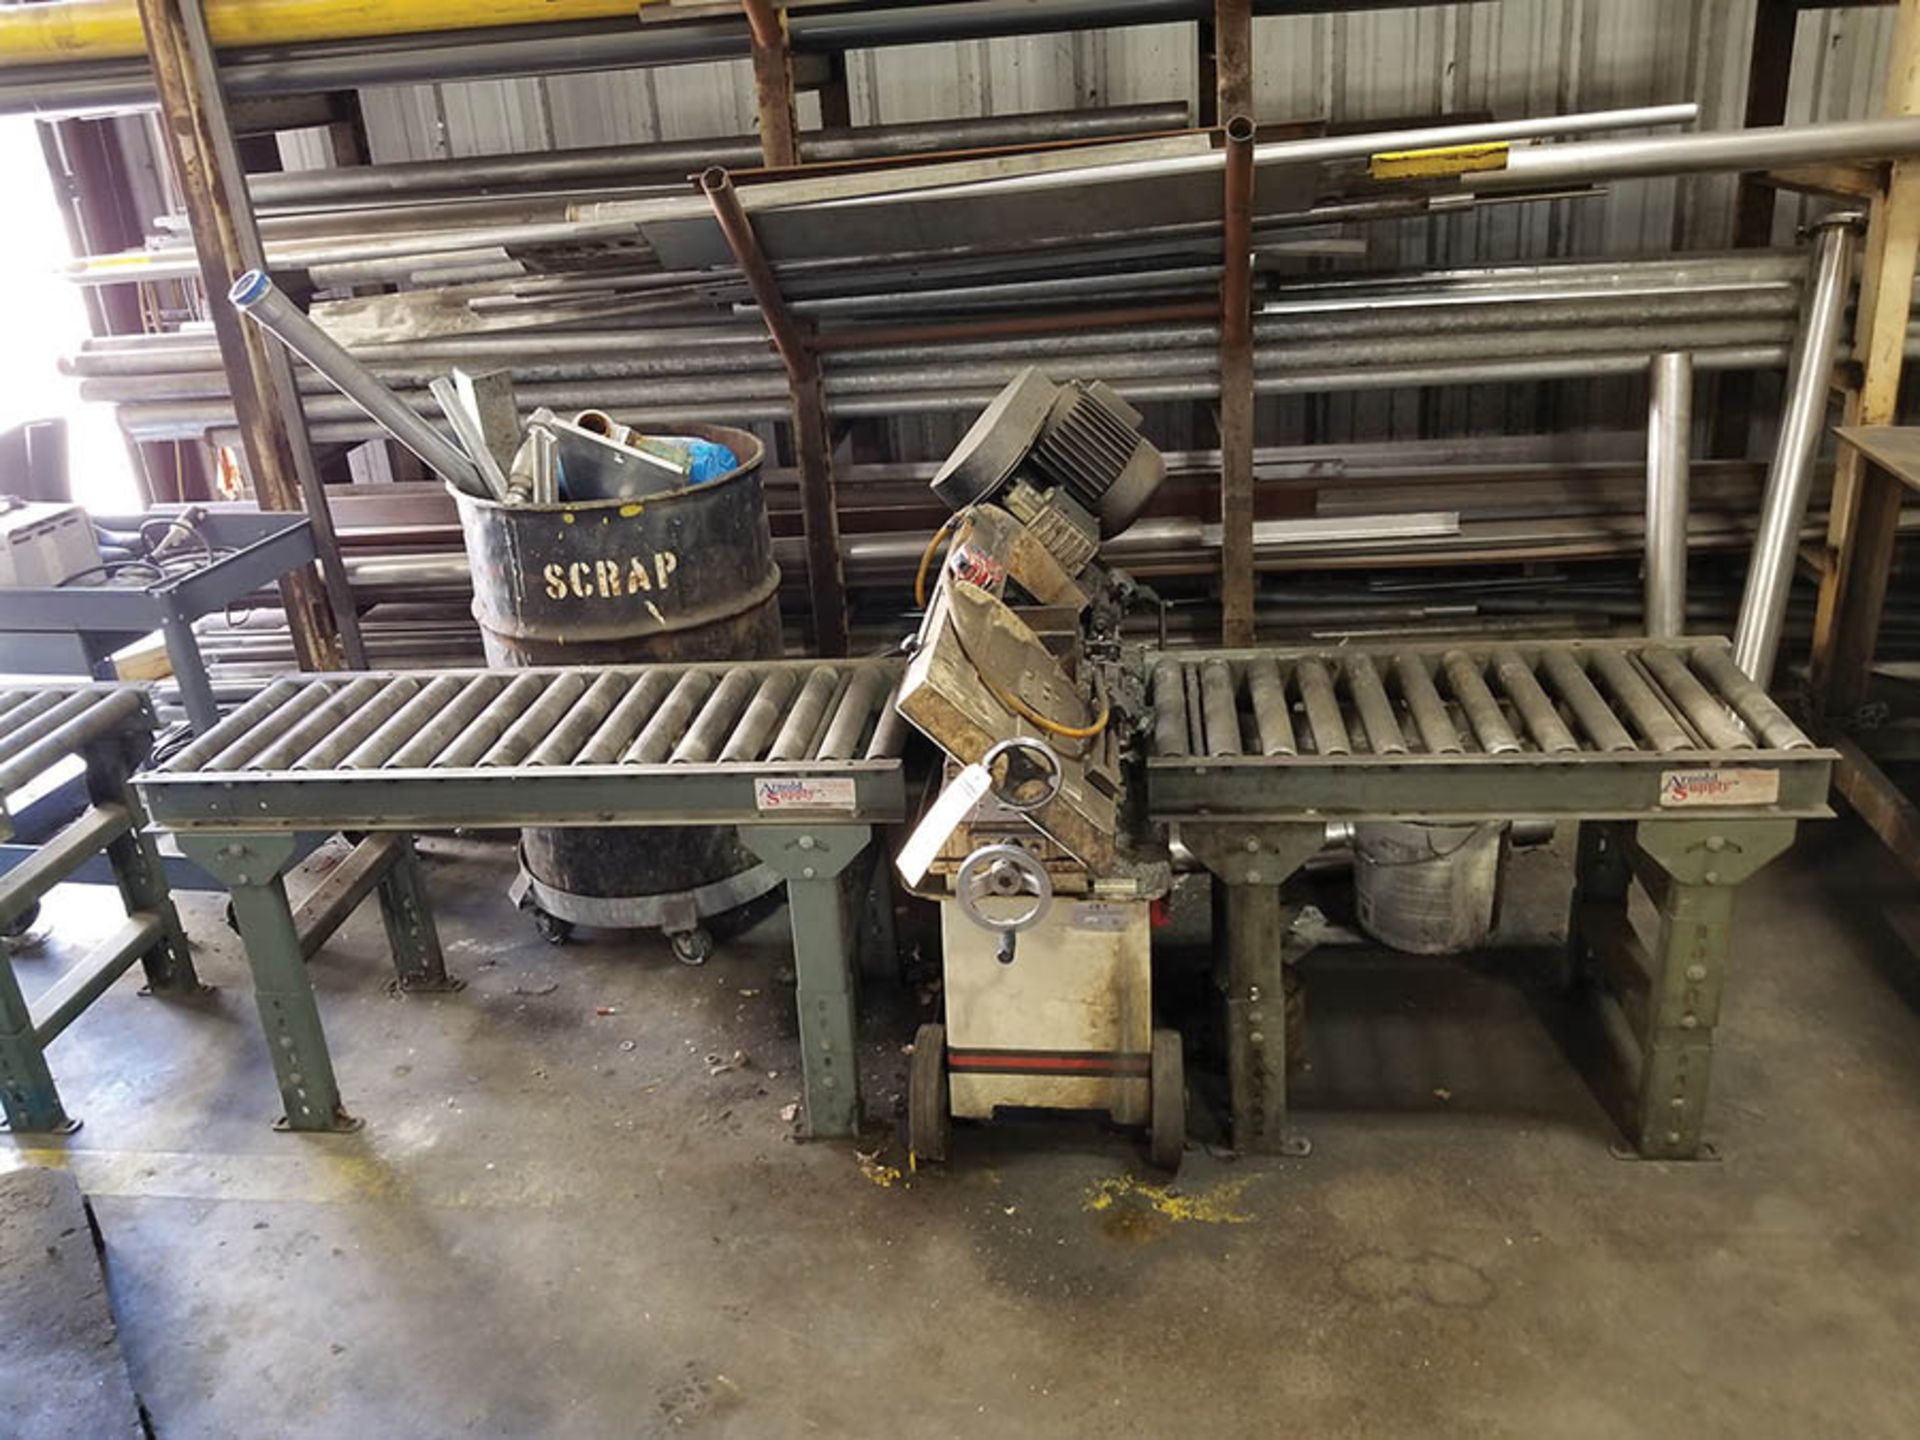 Lot 15 - JET 7'' X 12'' HORIZONTAL BAND SAW, MODEL J-3410, SINGLE MATERIAL CLAMP, 3-SECTION OF ROLLER